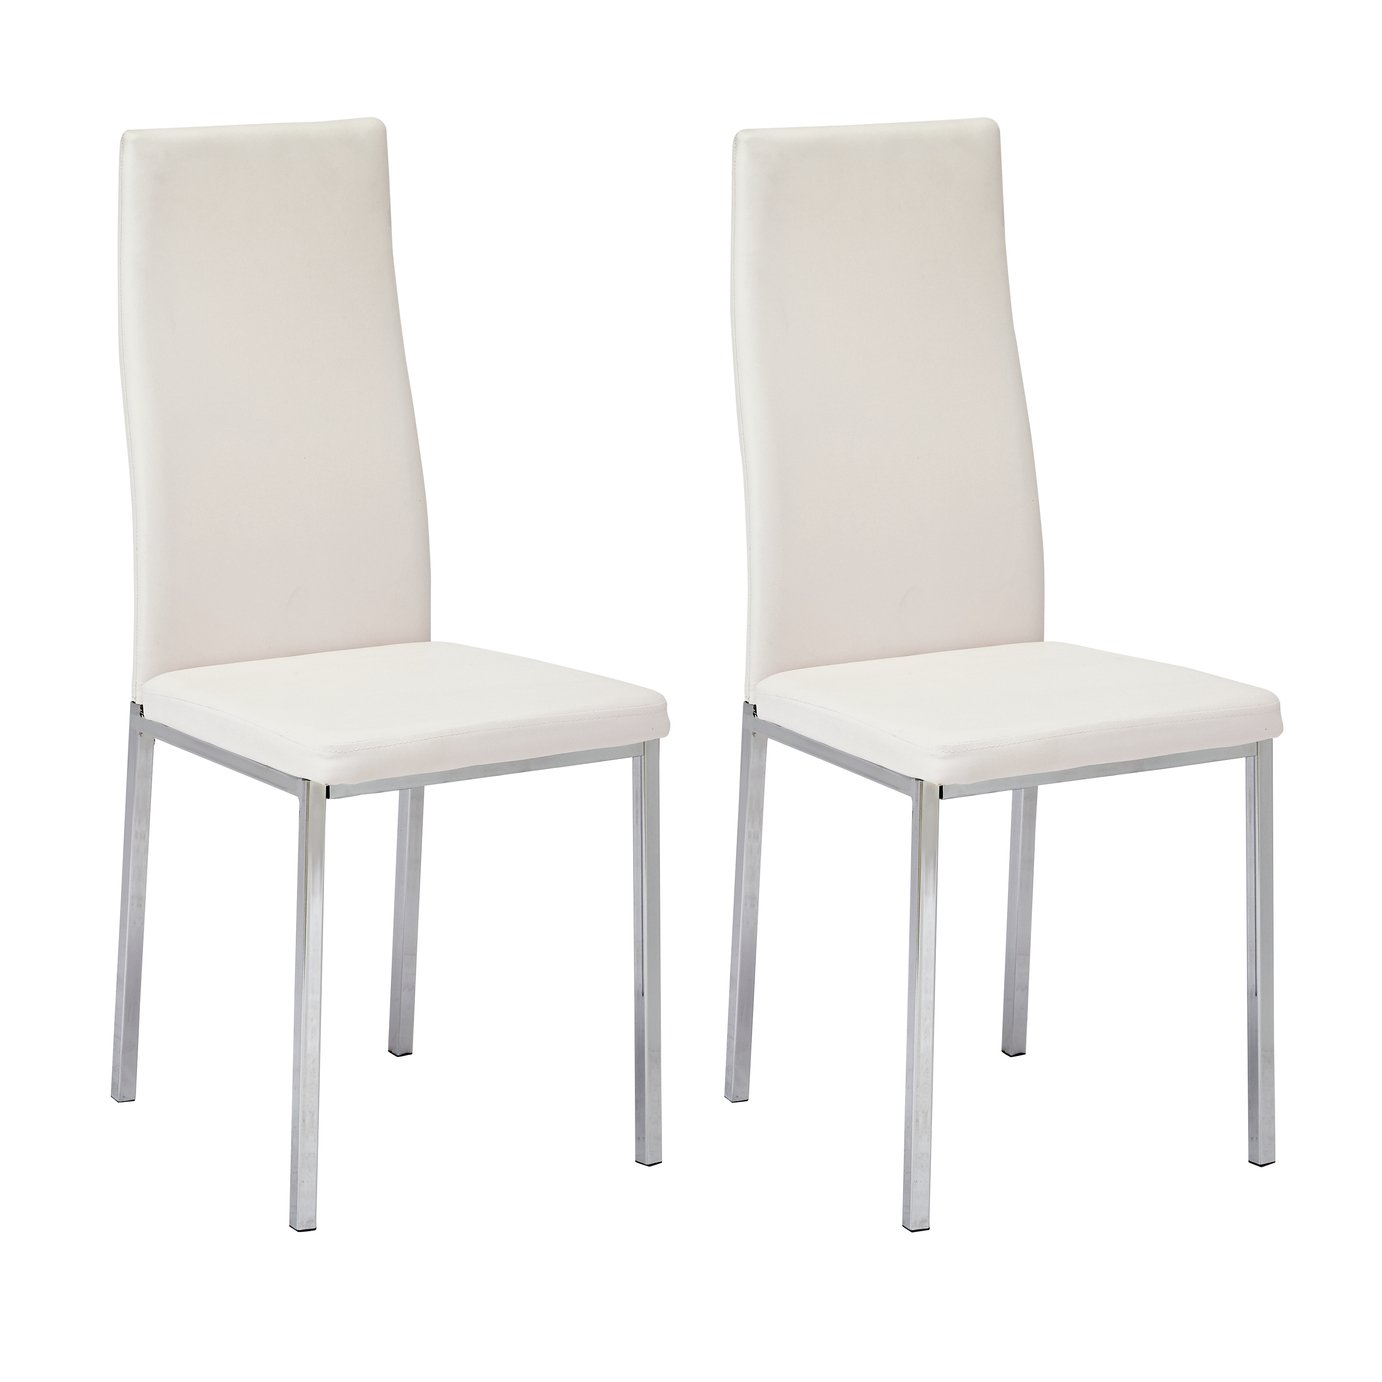 Argos Home Tia Pair of Chrome Dining Chairs review